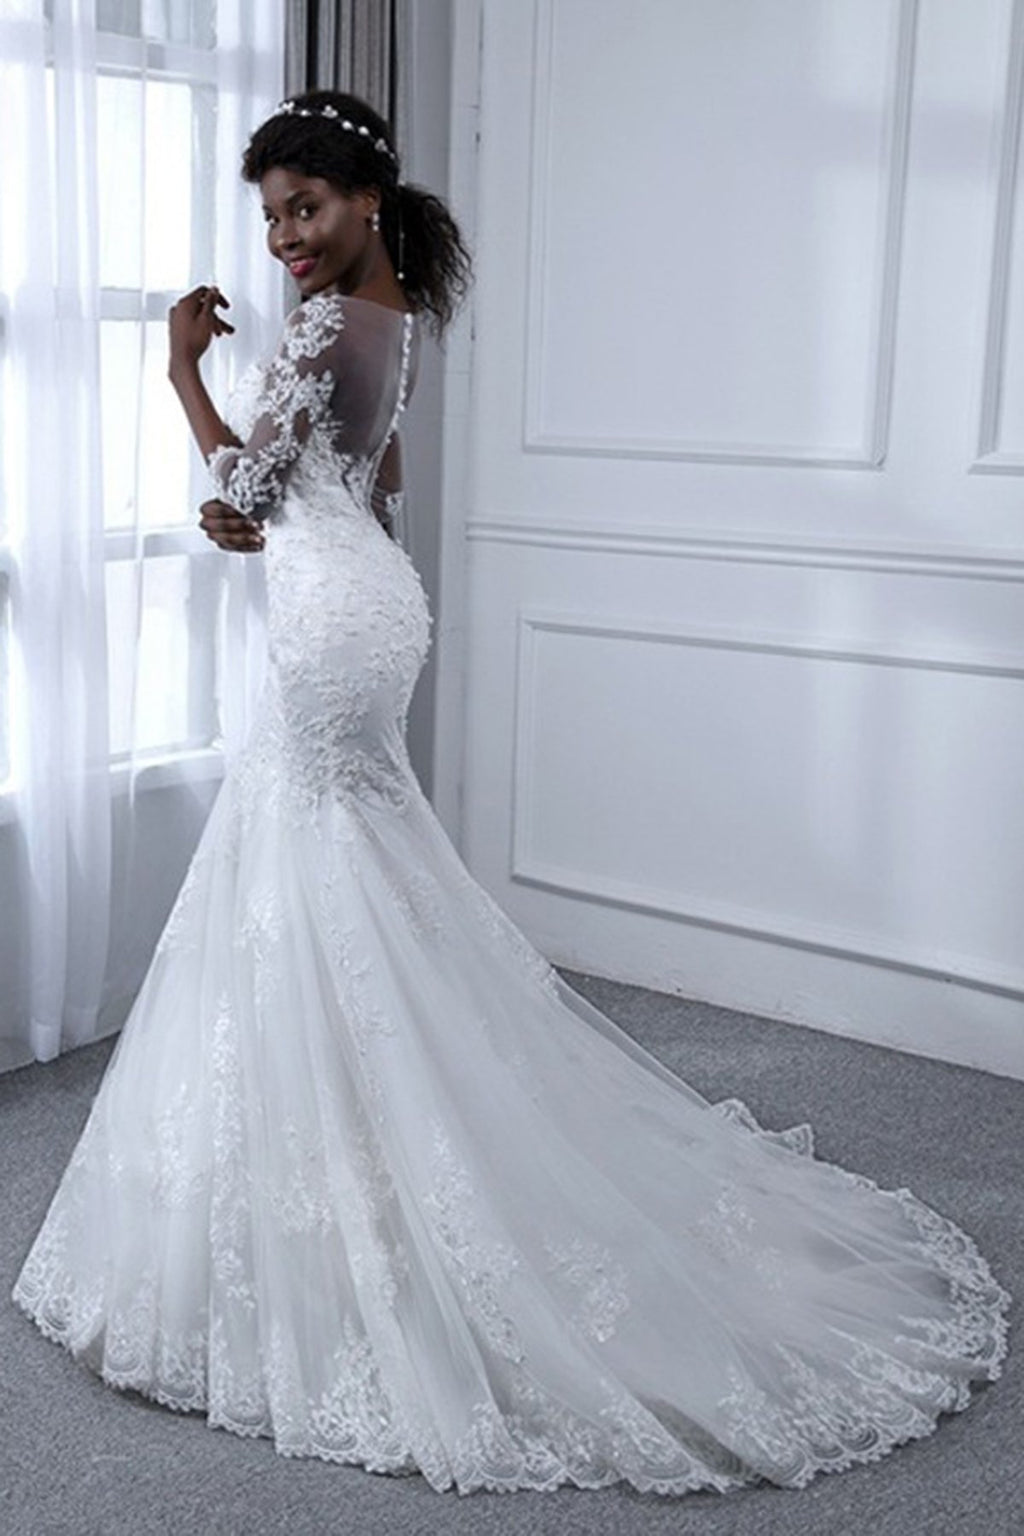 3/4 Sleeve Mermaid Sheath Wedding Dress Wedding Dress US2 Ivory